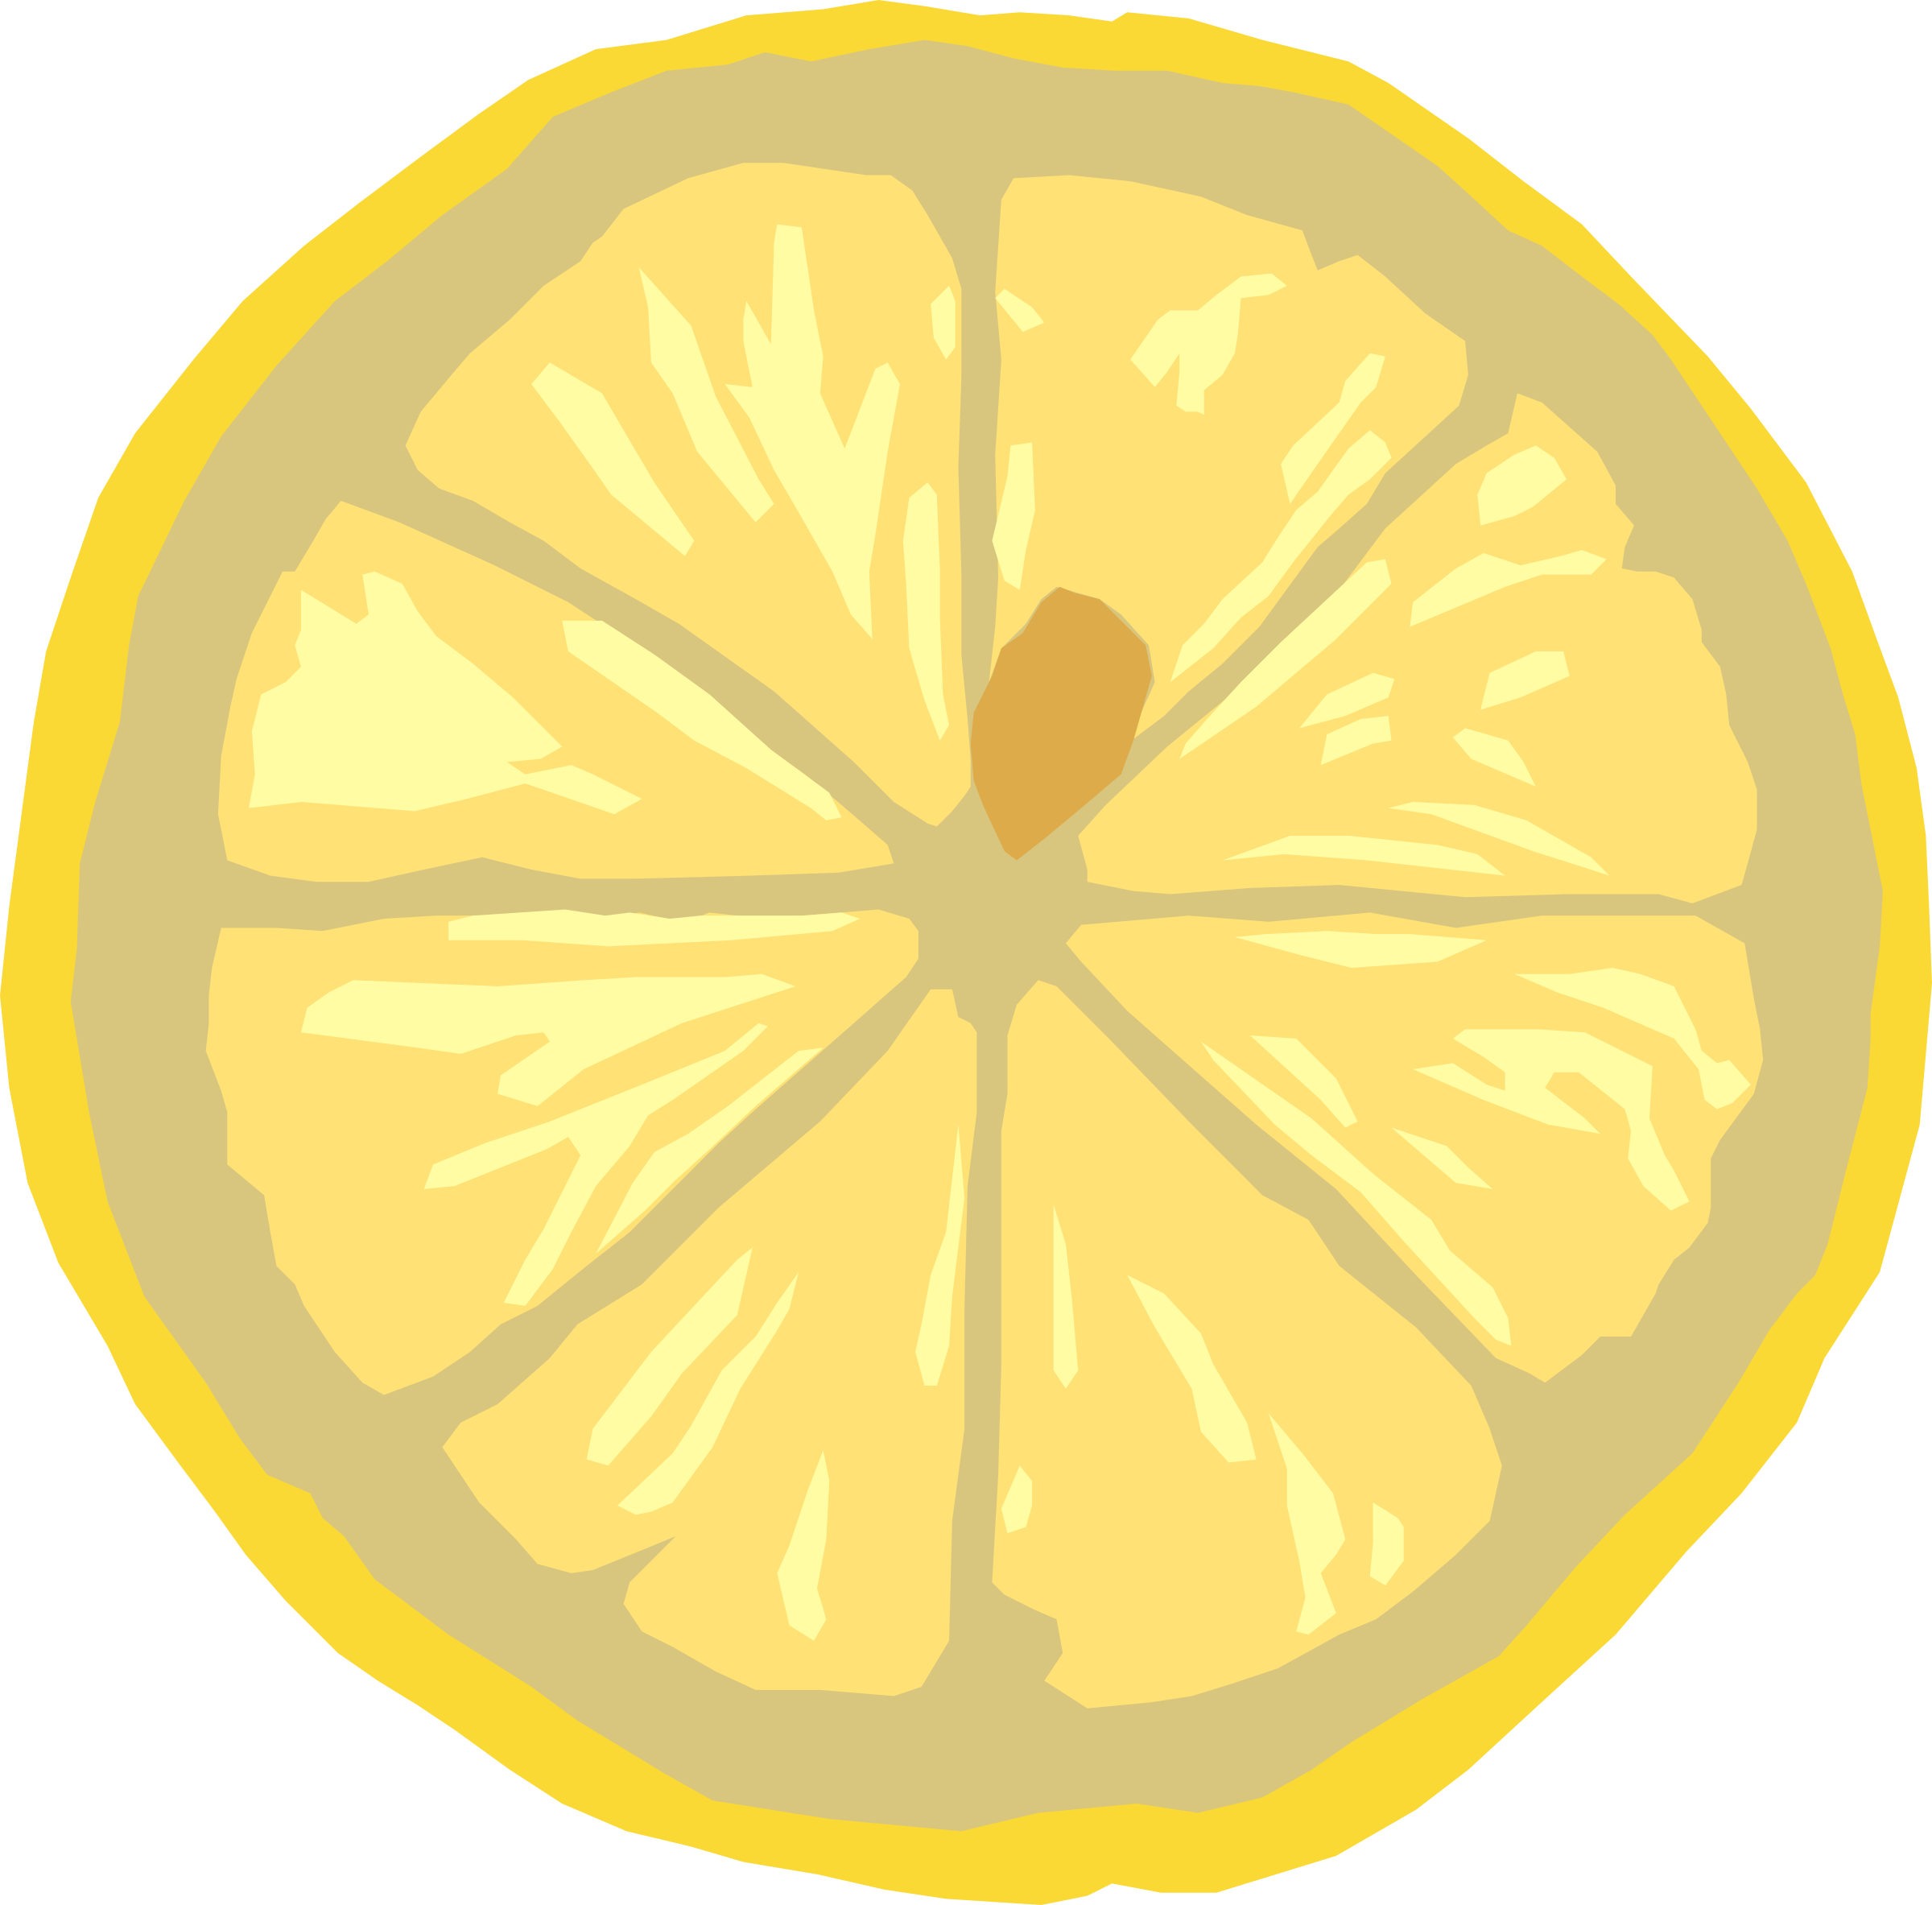 Lemon slice png. Icons free and downloads